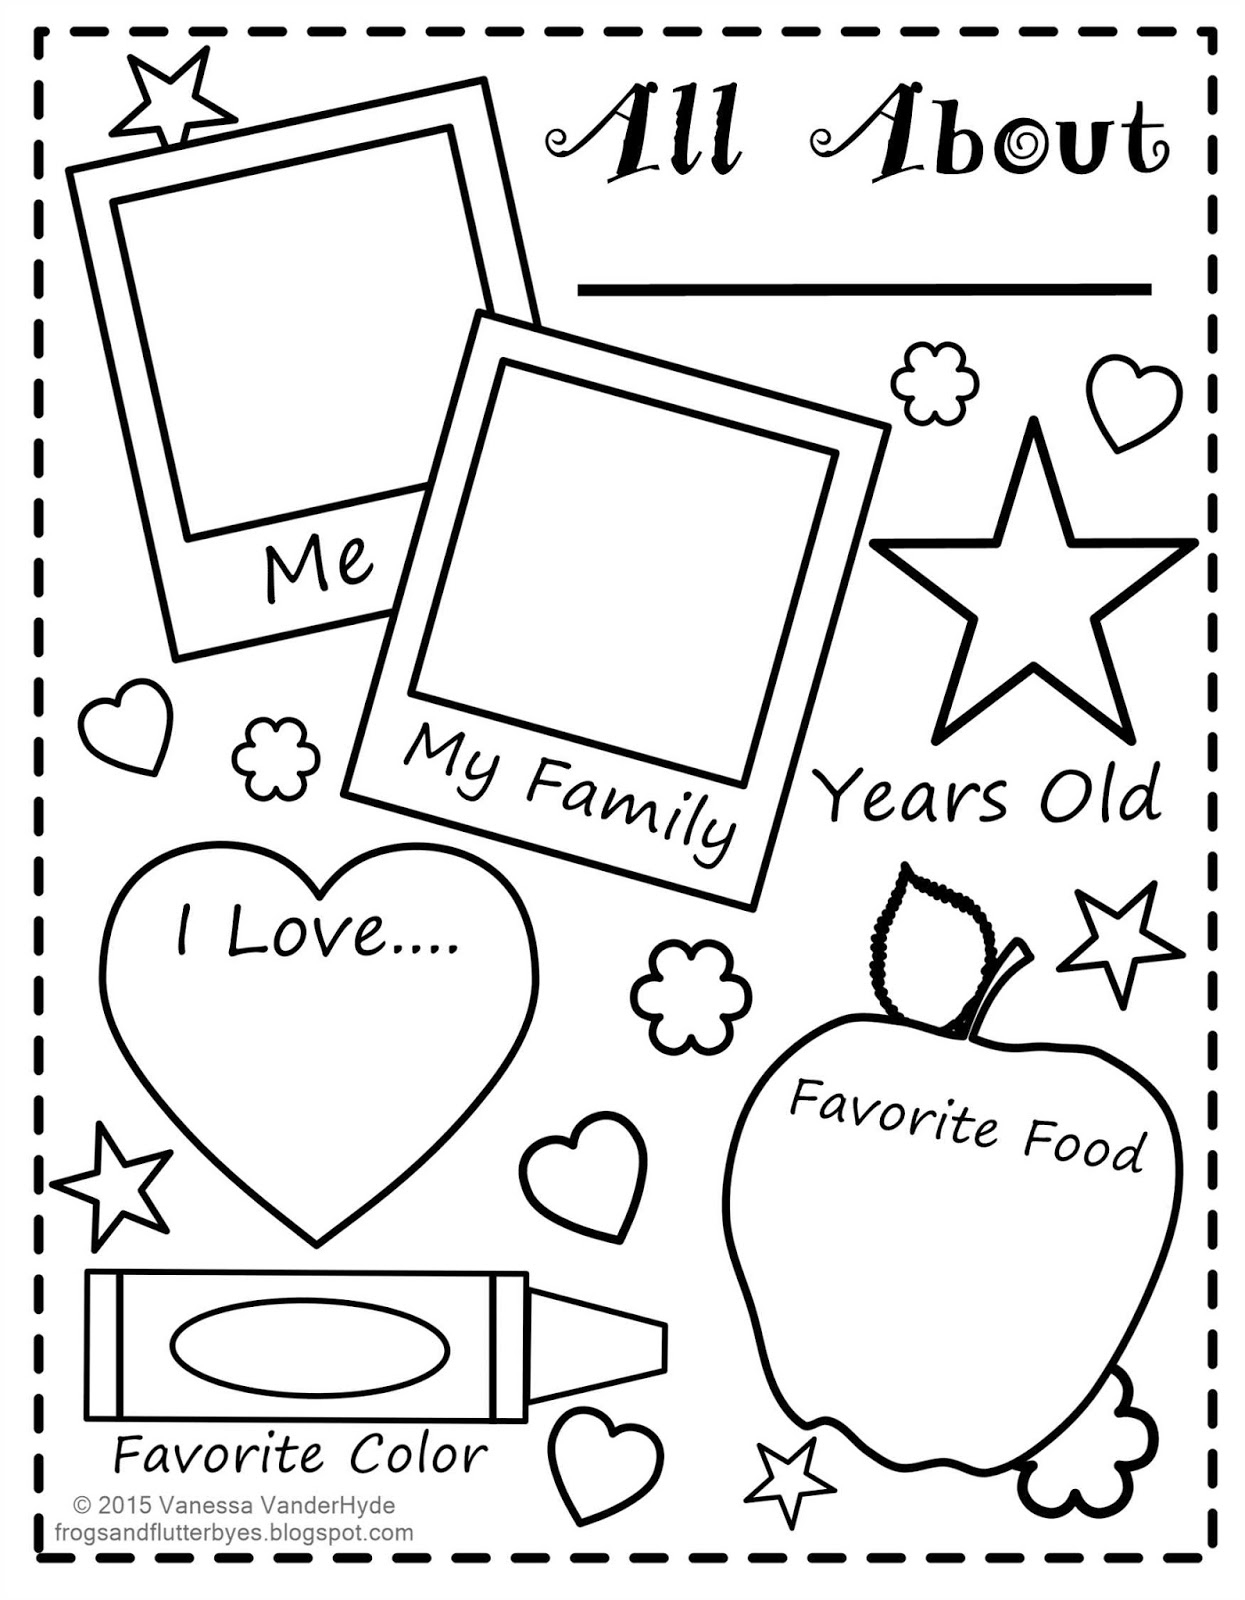 The Frogs And The Flutterbyes: All About Me Free Printable - All About Me Free Printable